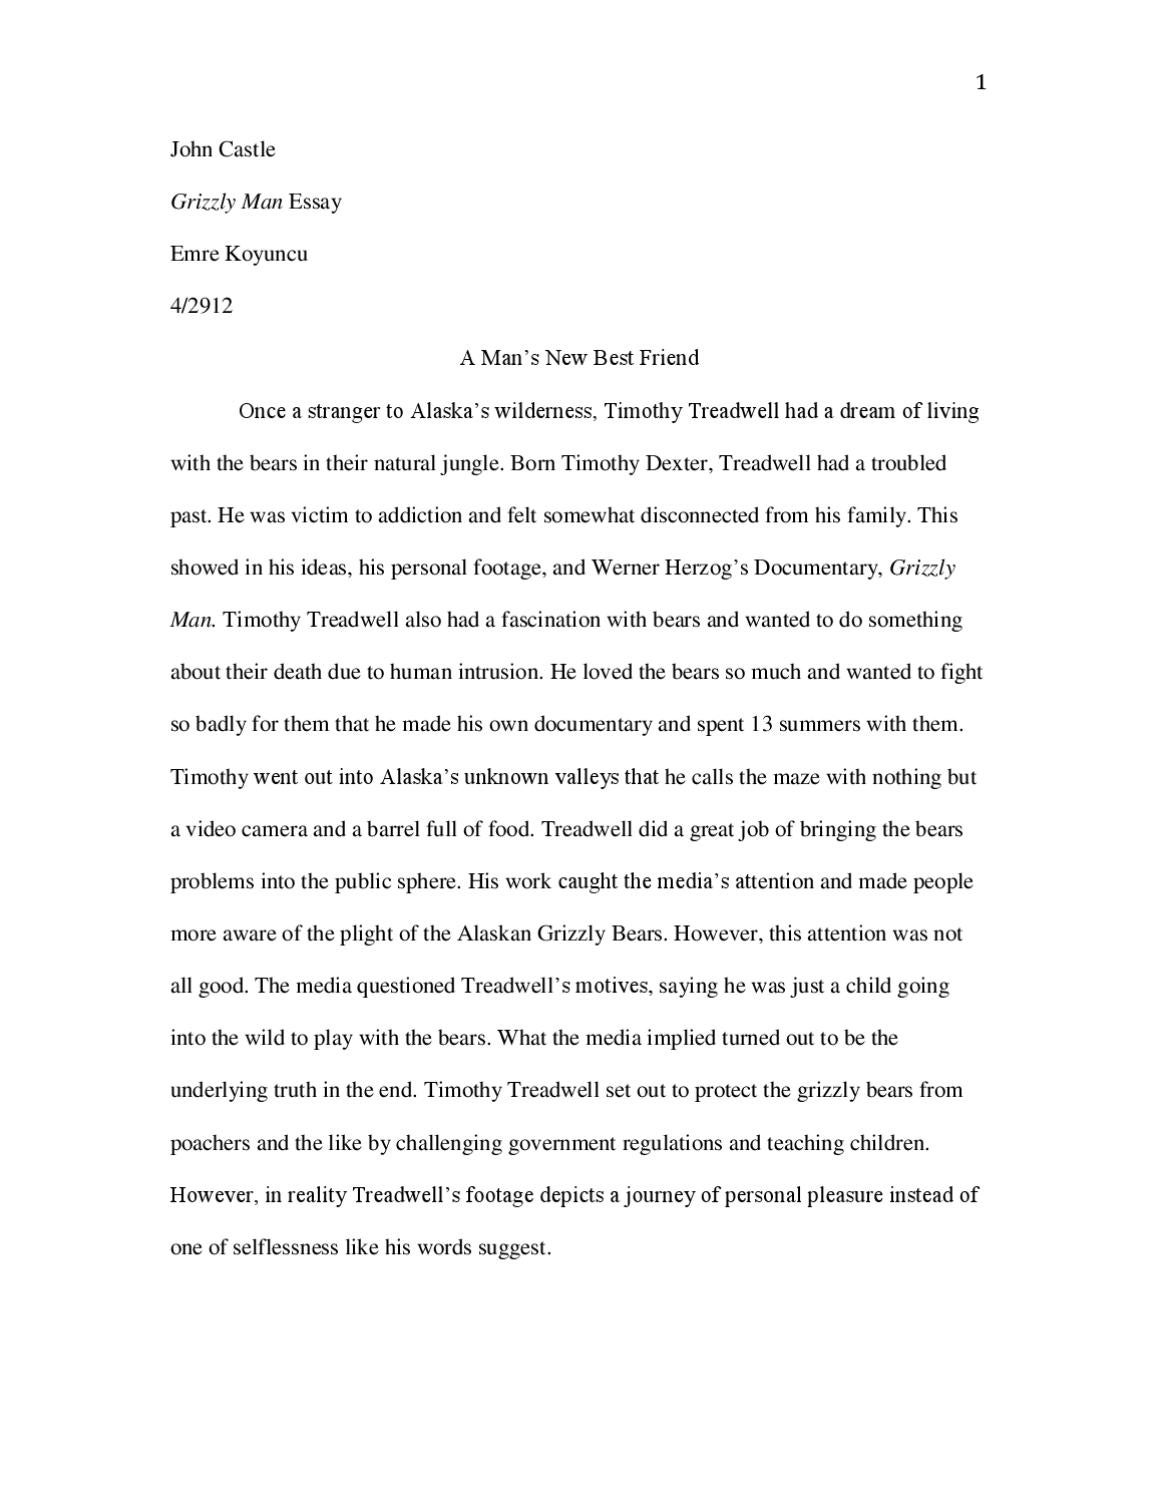 timothy treadwell a transcendentalist by ben kahn issuu revised grizzly man essay